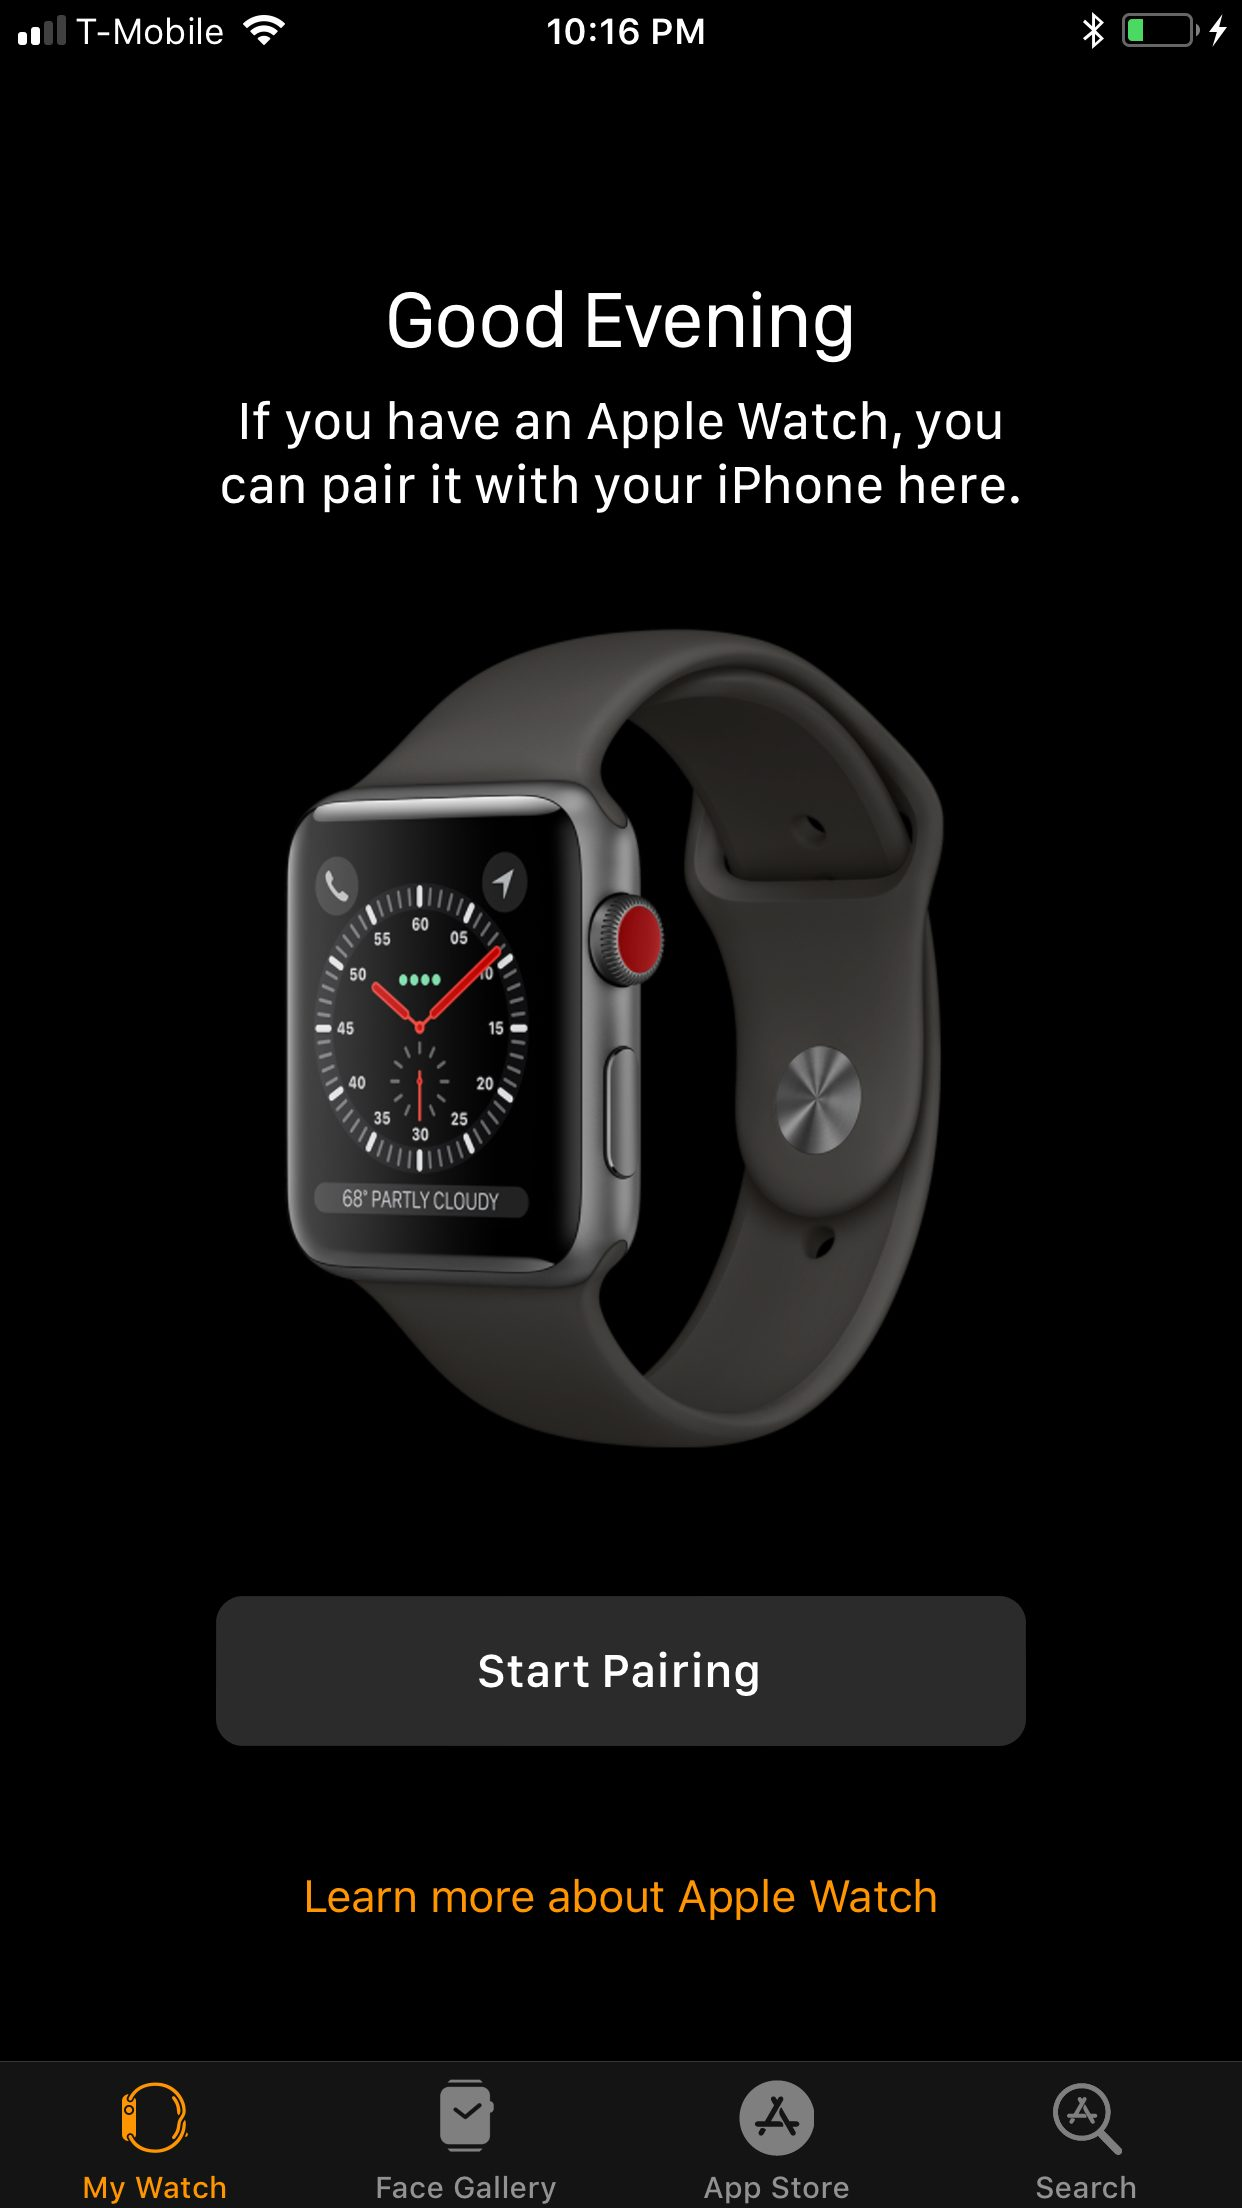 Tela de configuração do Apple Watch LTE no iOS 11